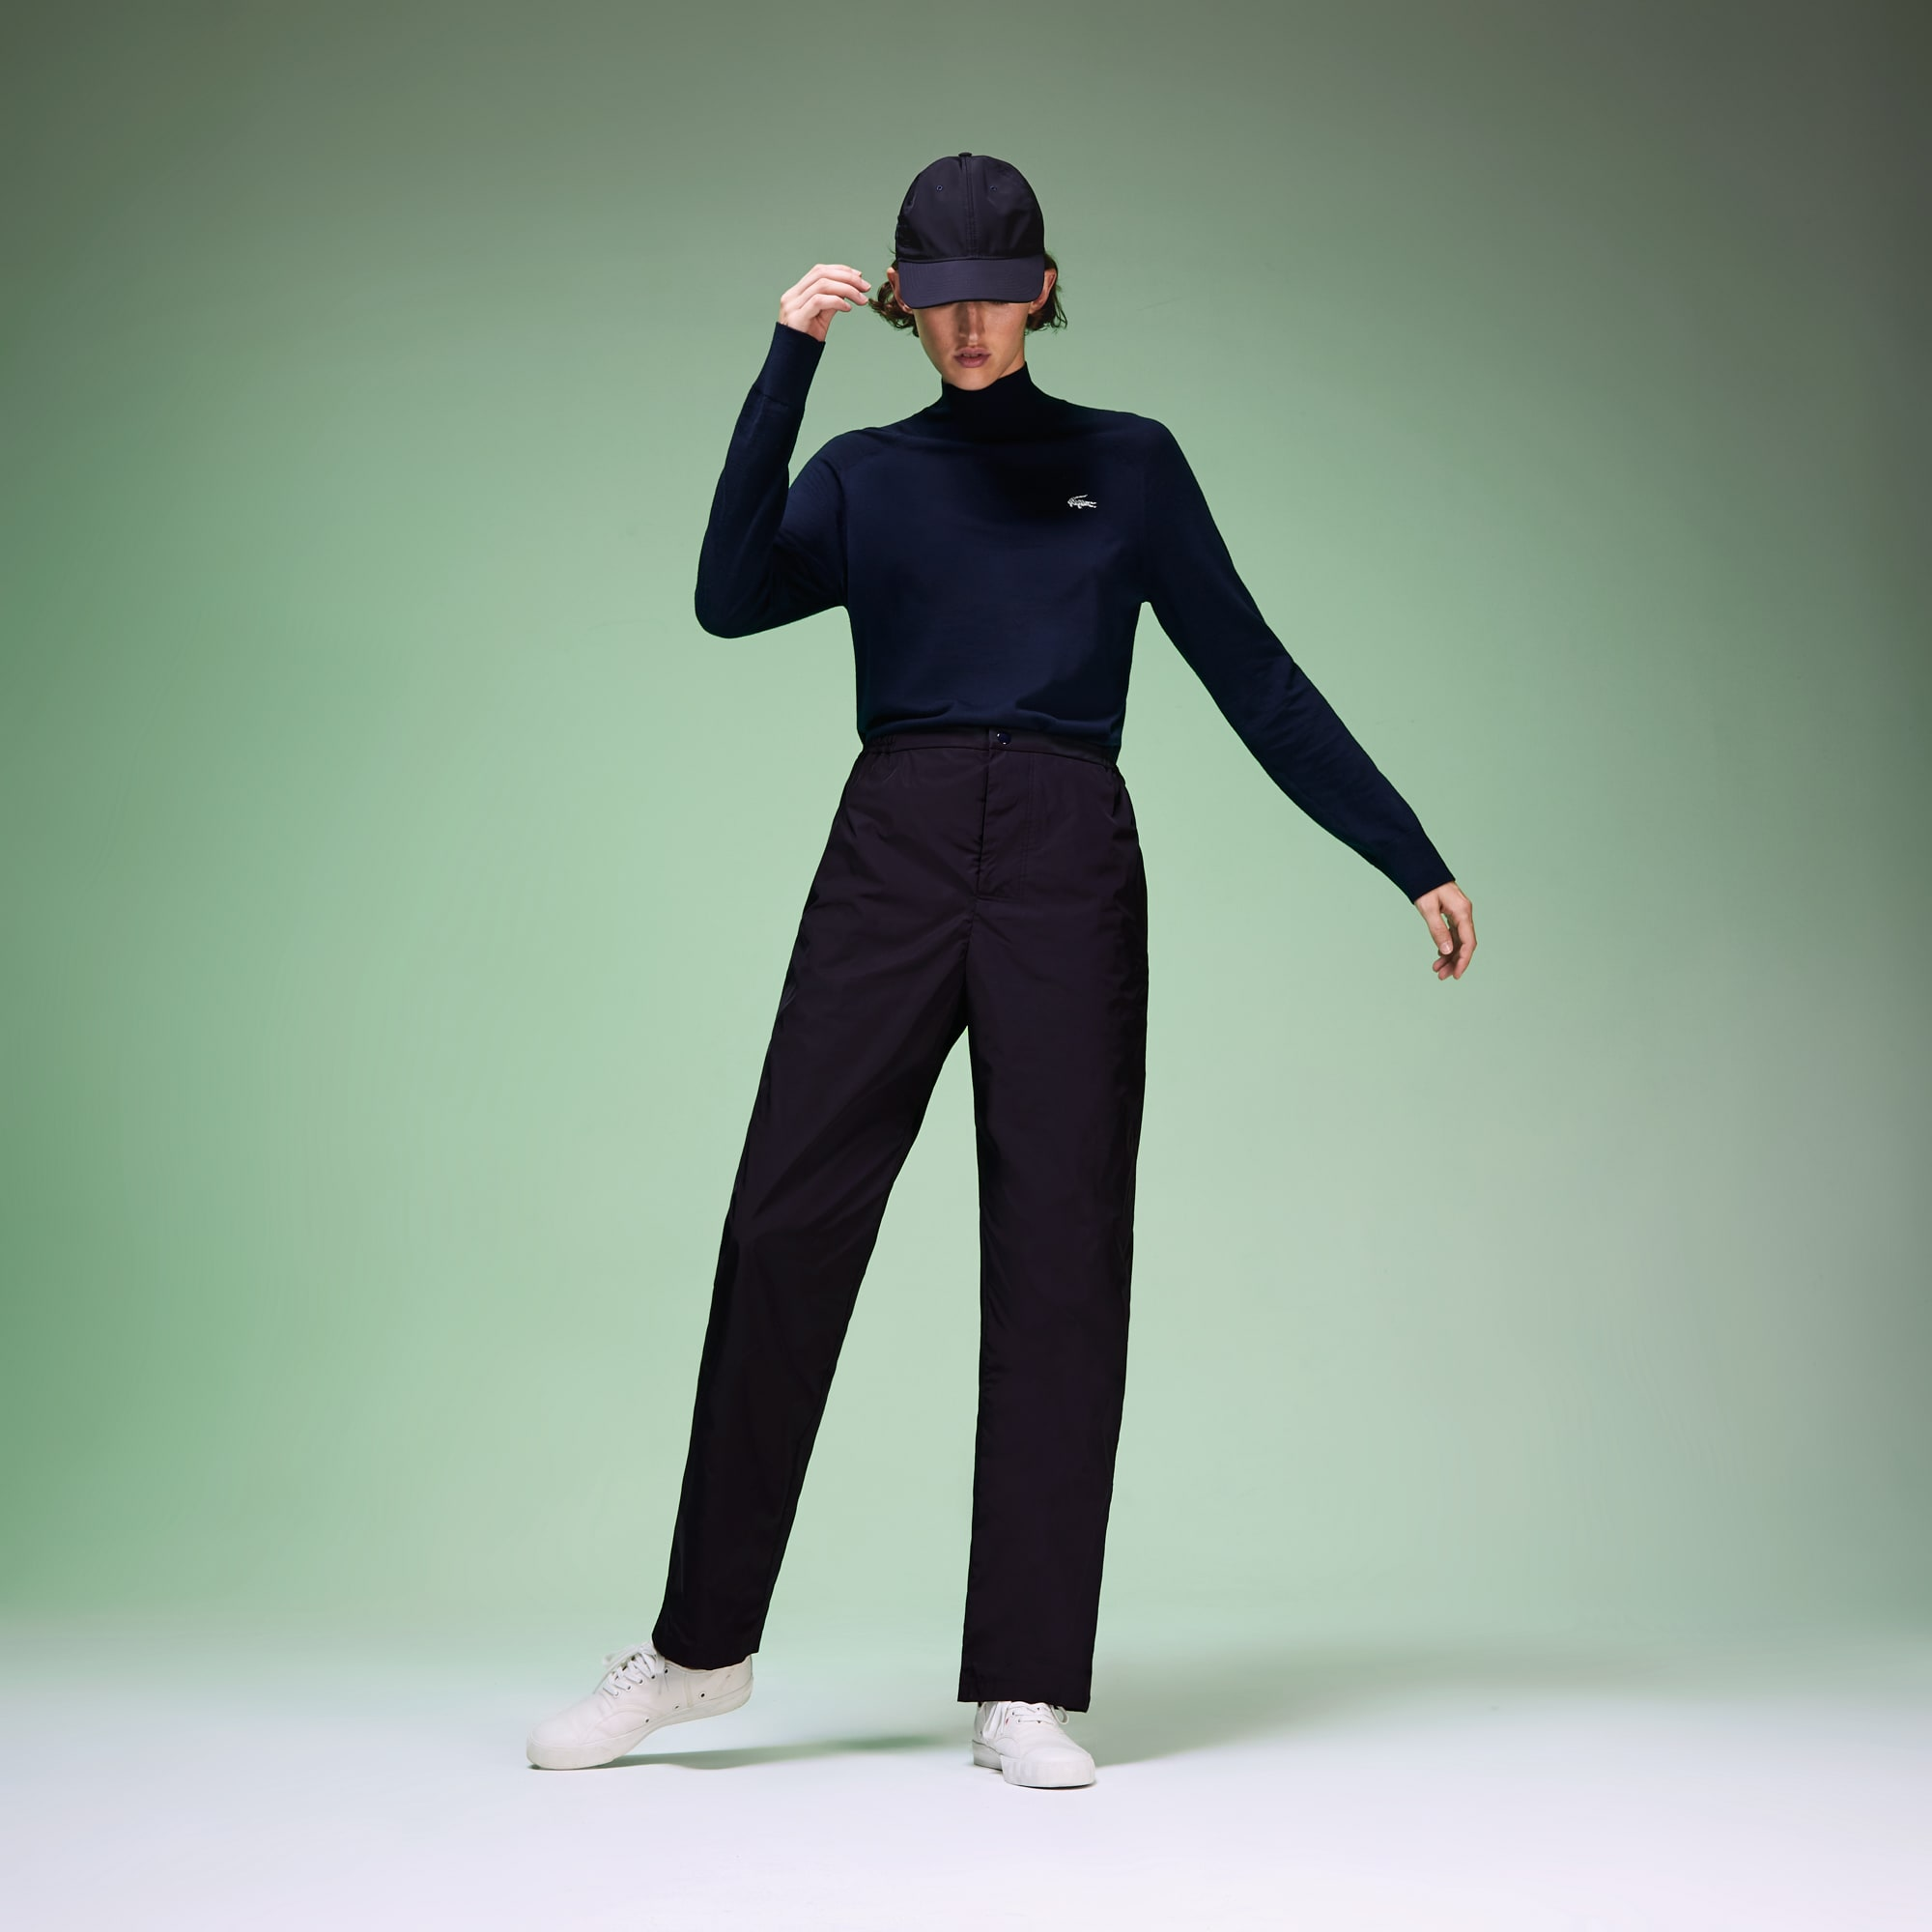 Unisex Fashion Show Wide Leg Pants